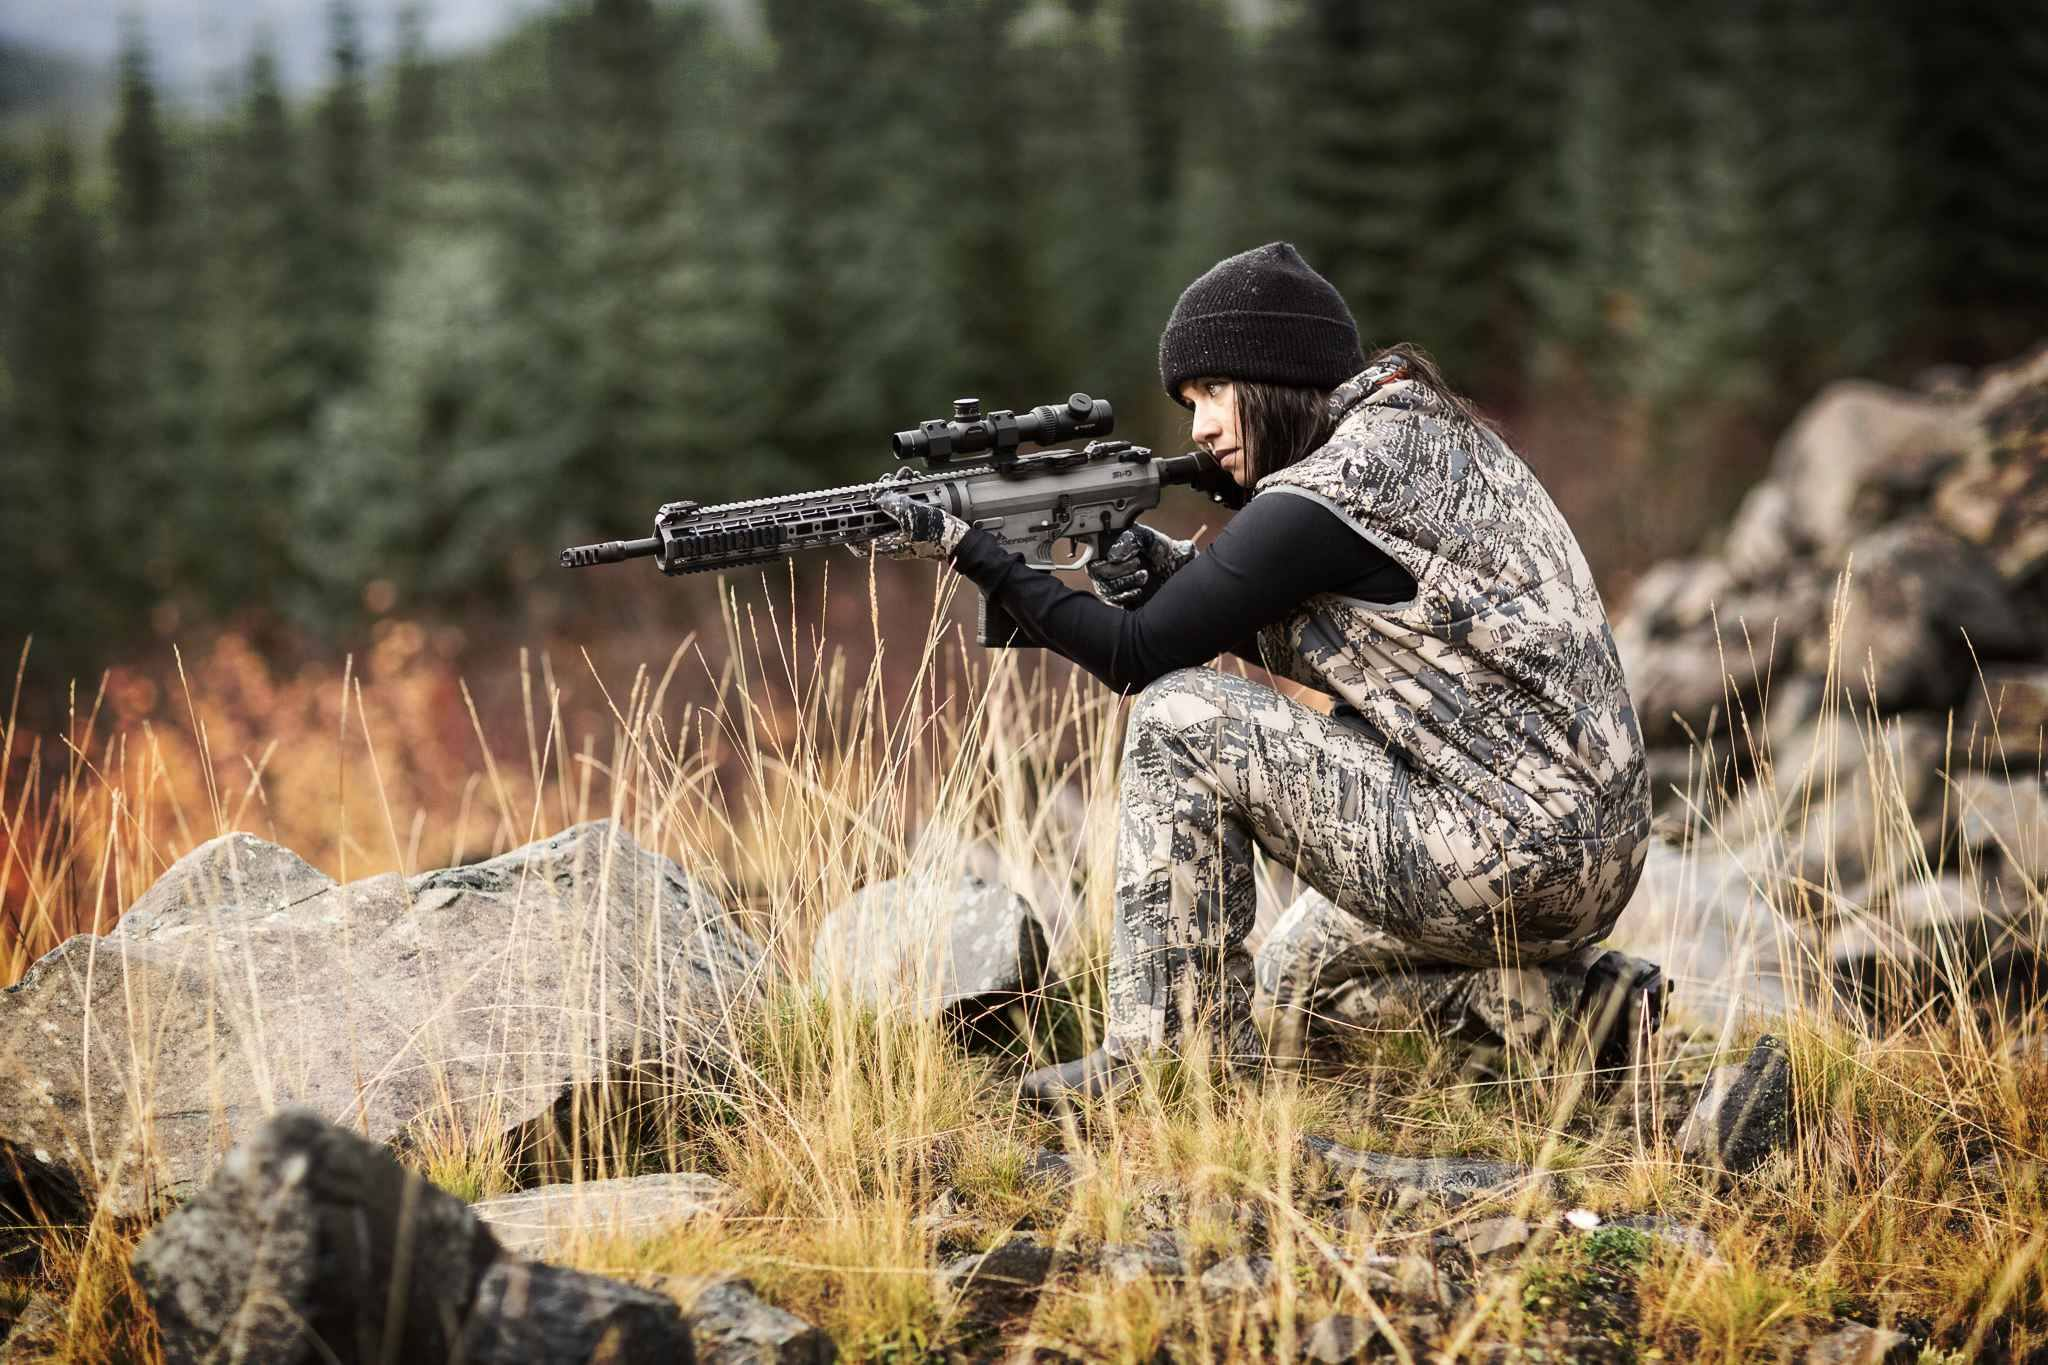 Semi-Auto Hunting in Pennsylvania: How the Black Rifle Went Mainstream